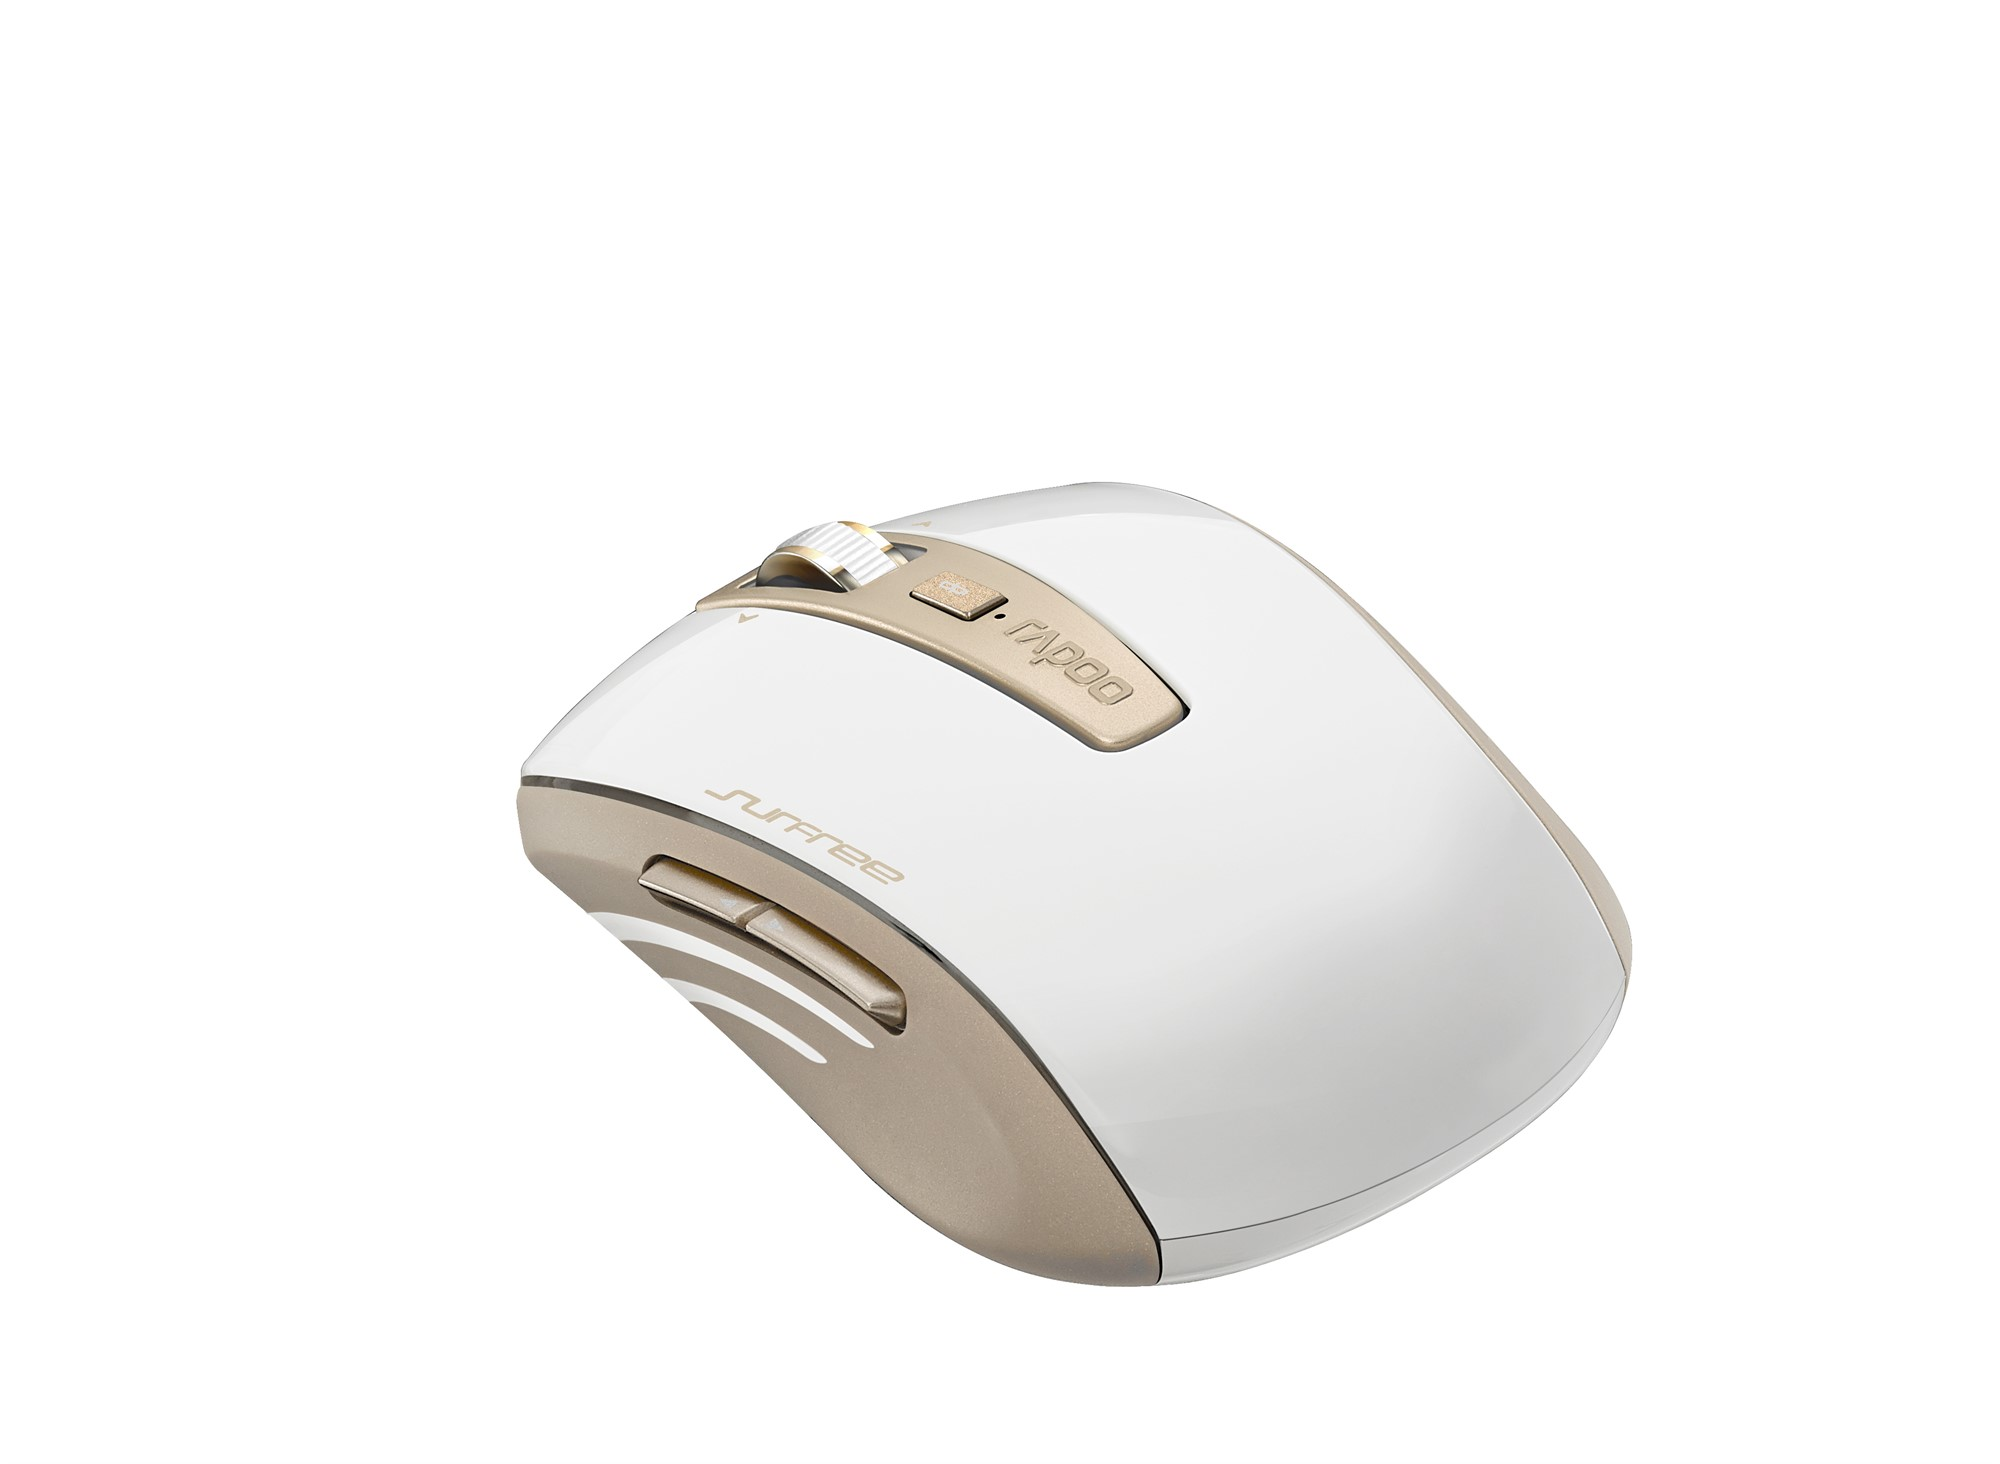 RAPOO 13347 3920P RF WIRELESS LASER 1600DPI AMBIDEXTROUS GOLD, WHITE MICE